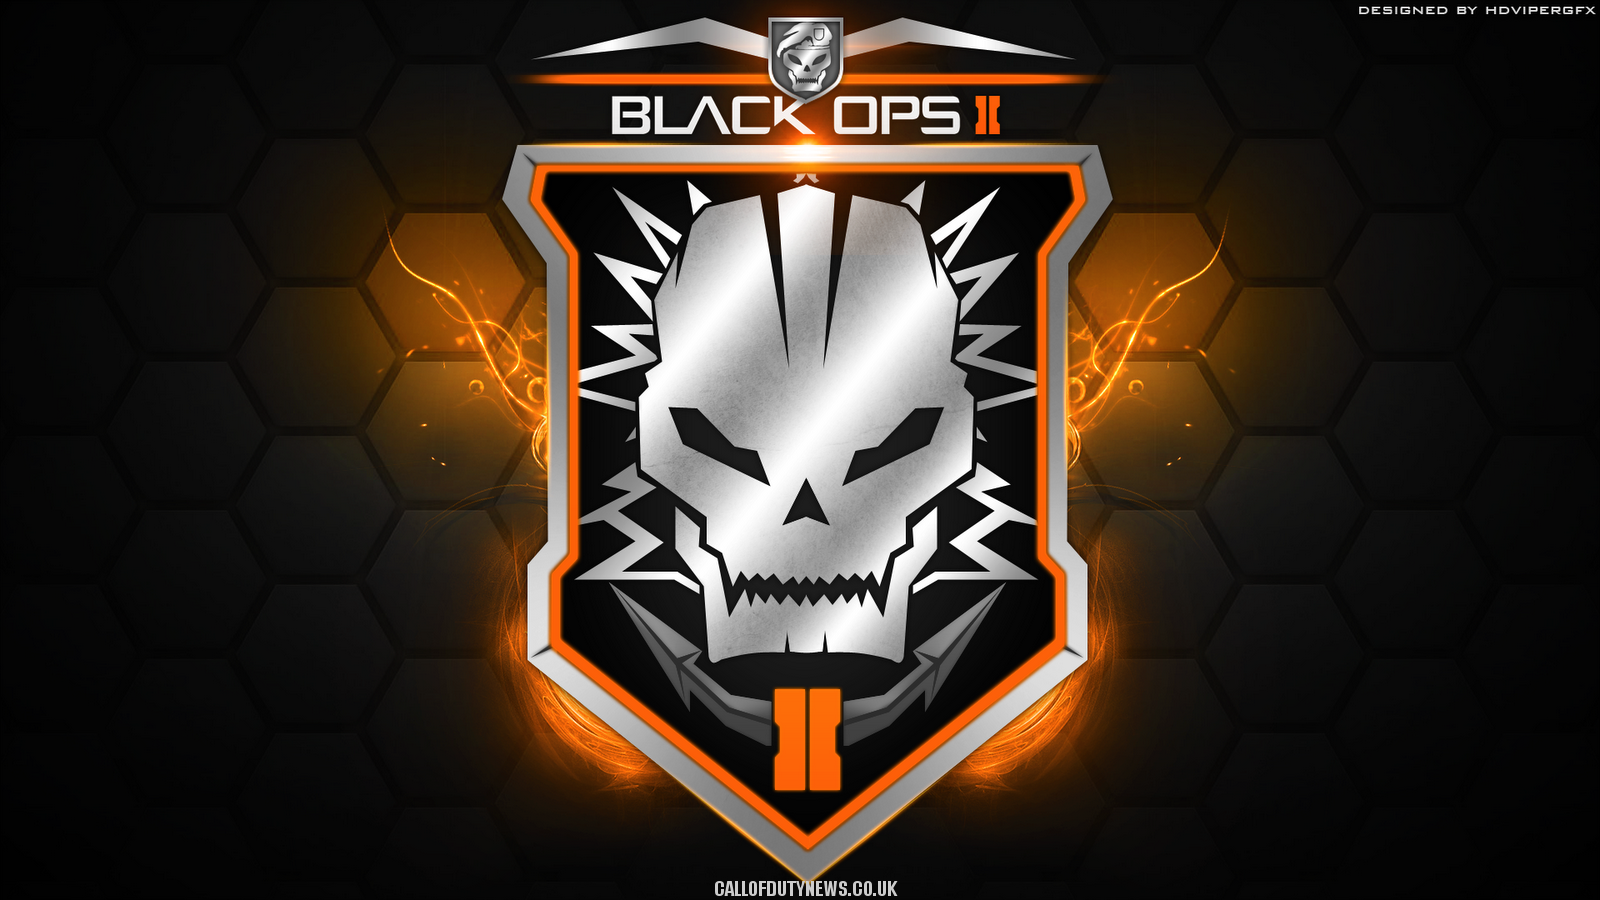 Call of duty black ops ii wallpapers free download bradys call of duty black ops ii wallpapers free download biocorpaavc